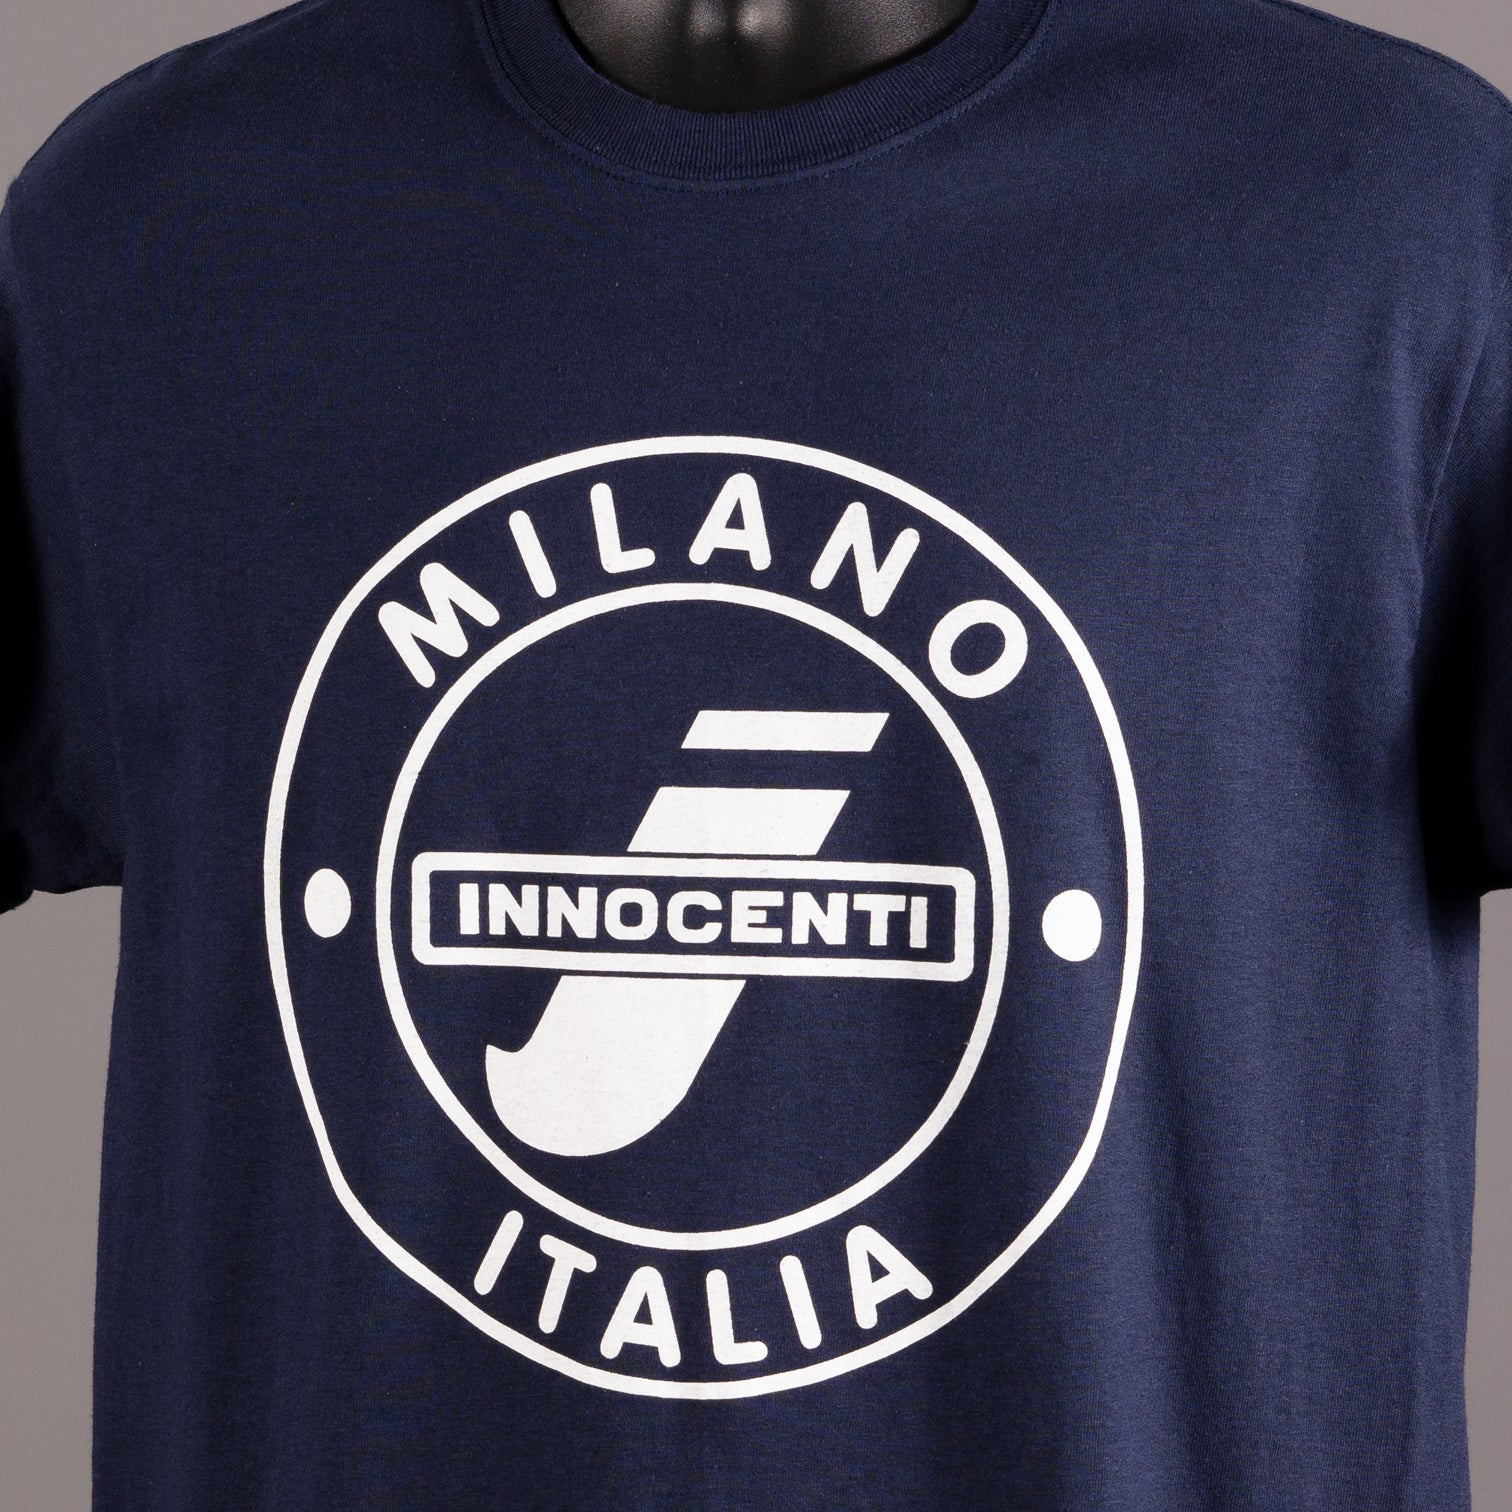 Lambretta Innocenti Of Milan T Shirt